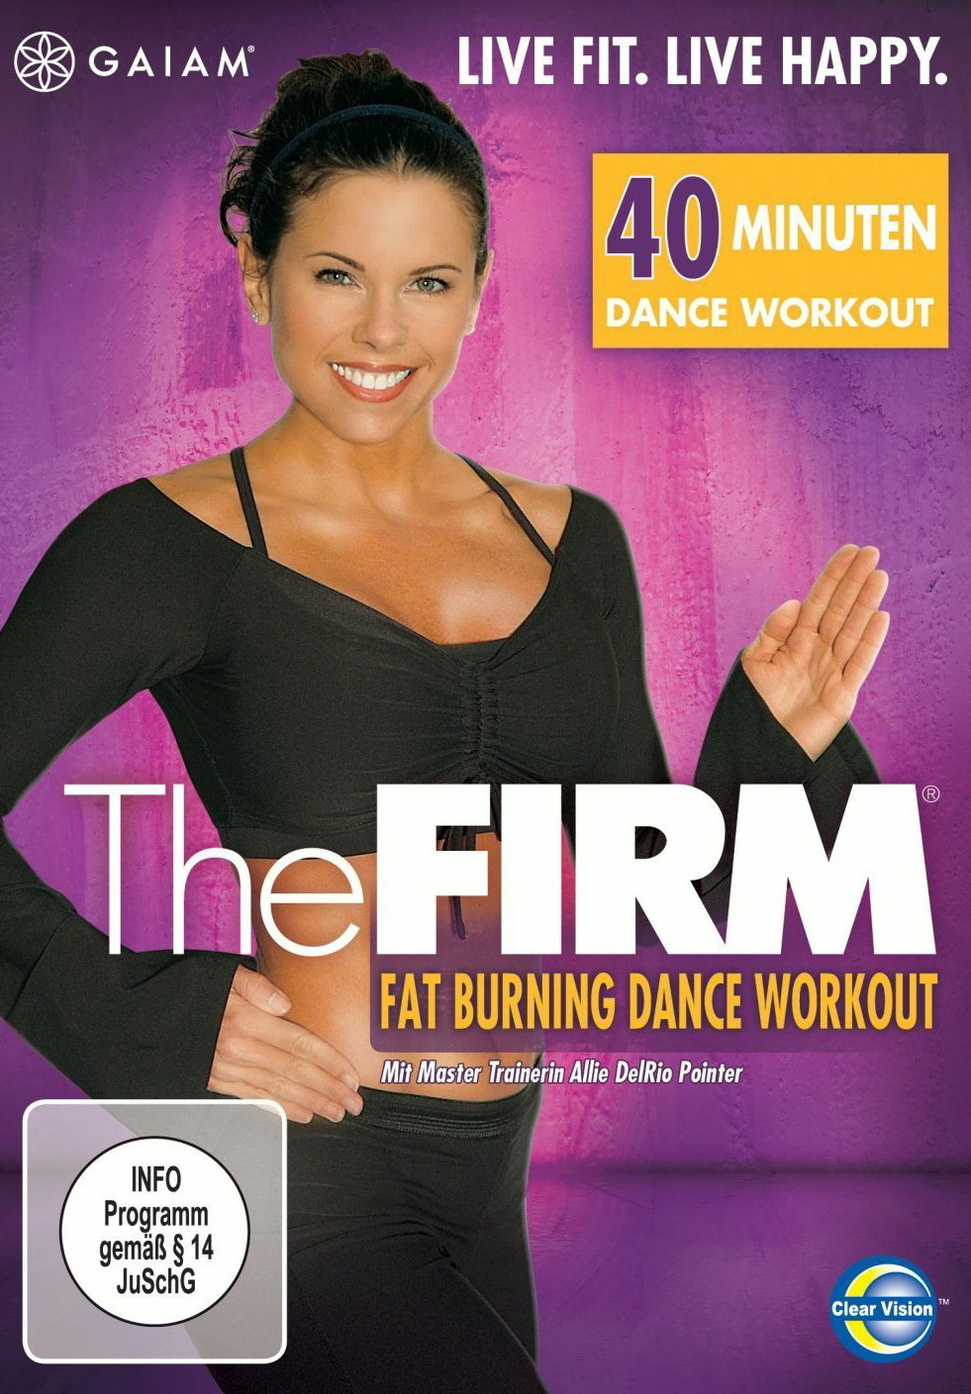 Gaiam: The Firm - Fat Burning Dance Workout